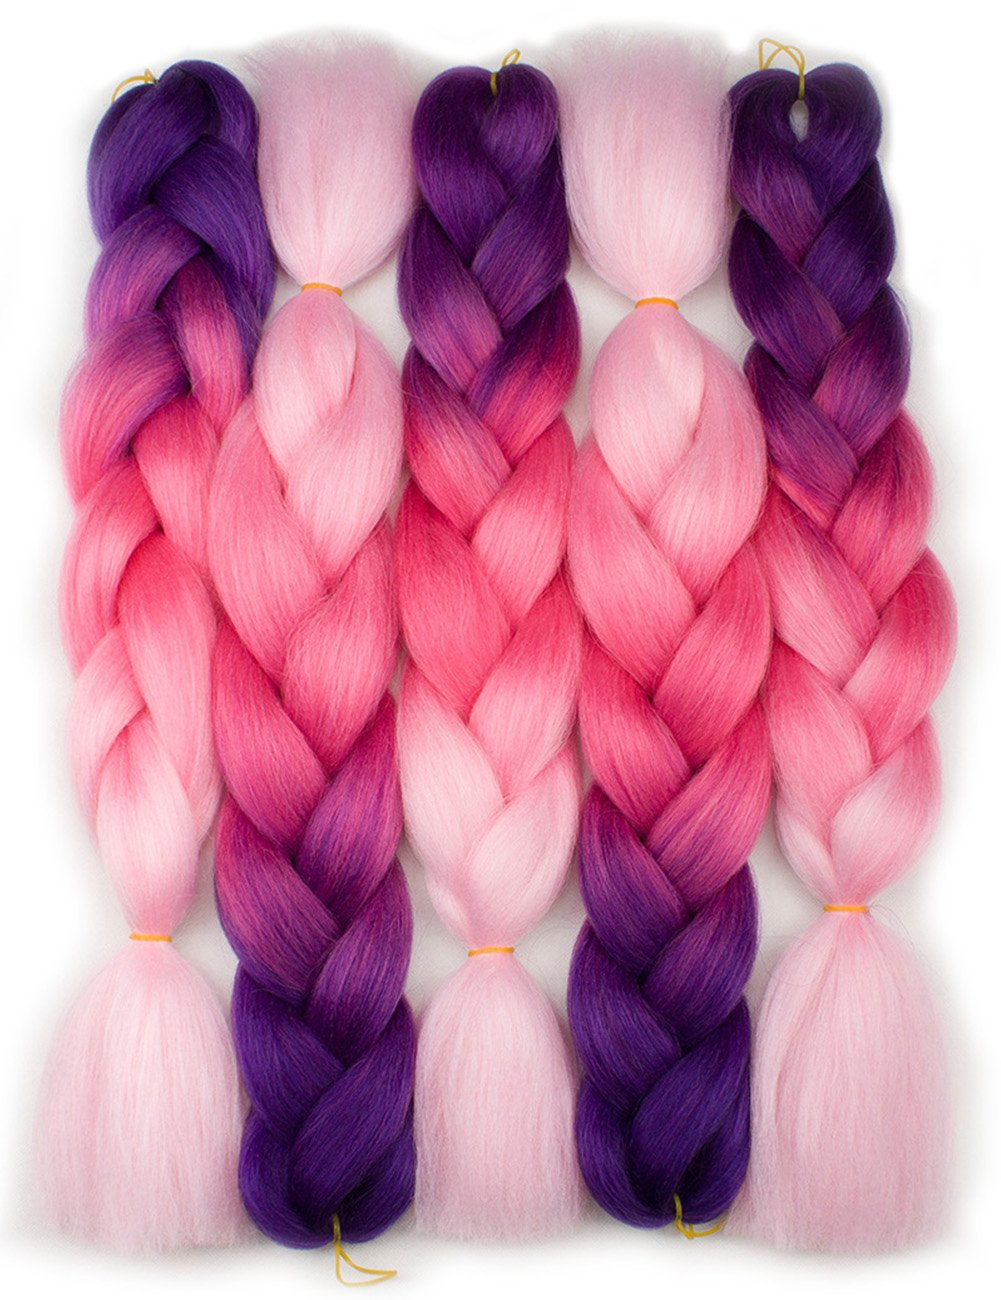 Forevery Braiding Hair Kanekalon Synthetic Ombre Hair Braiding Extensions 5Pcs High Temperature Fiber Crochet Twist Braids Purple to Magenta to Pink (24'', 10#) by Forevery